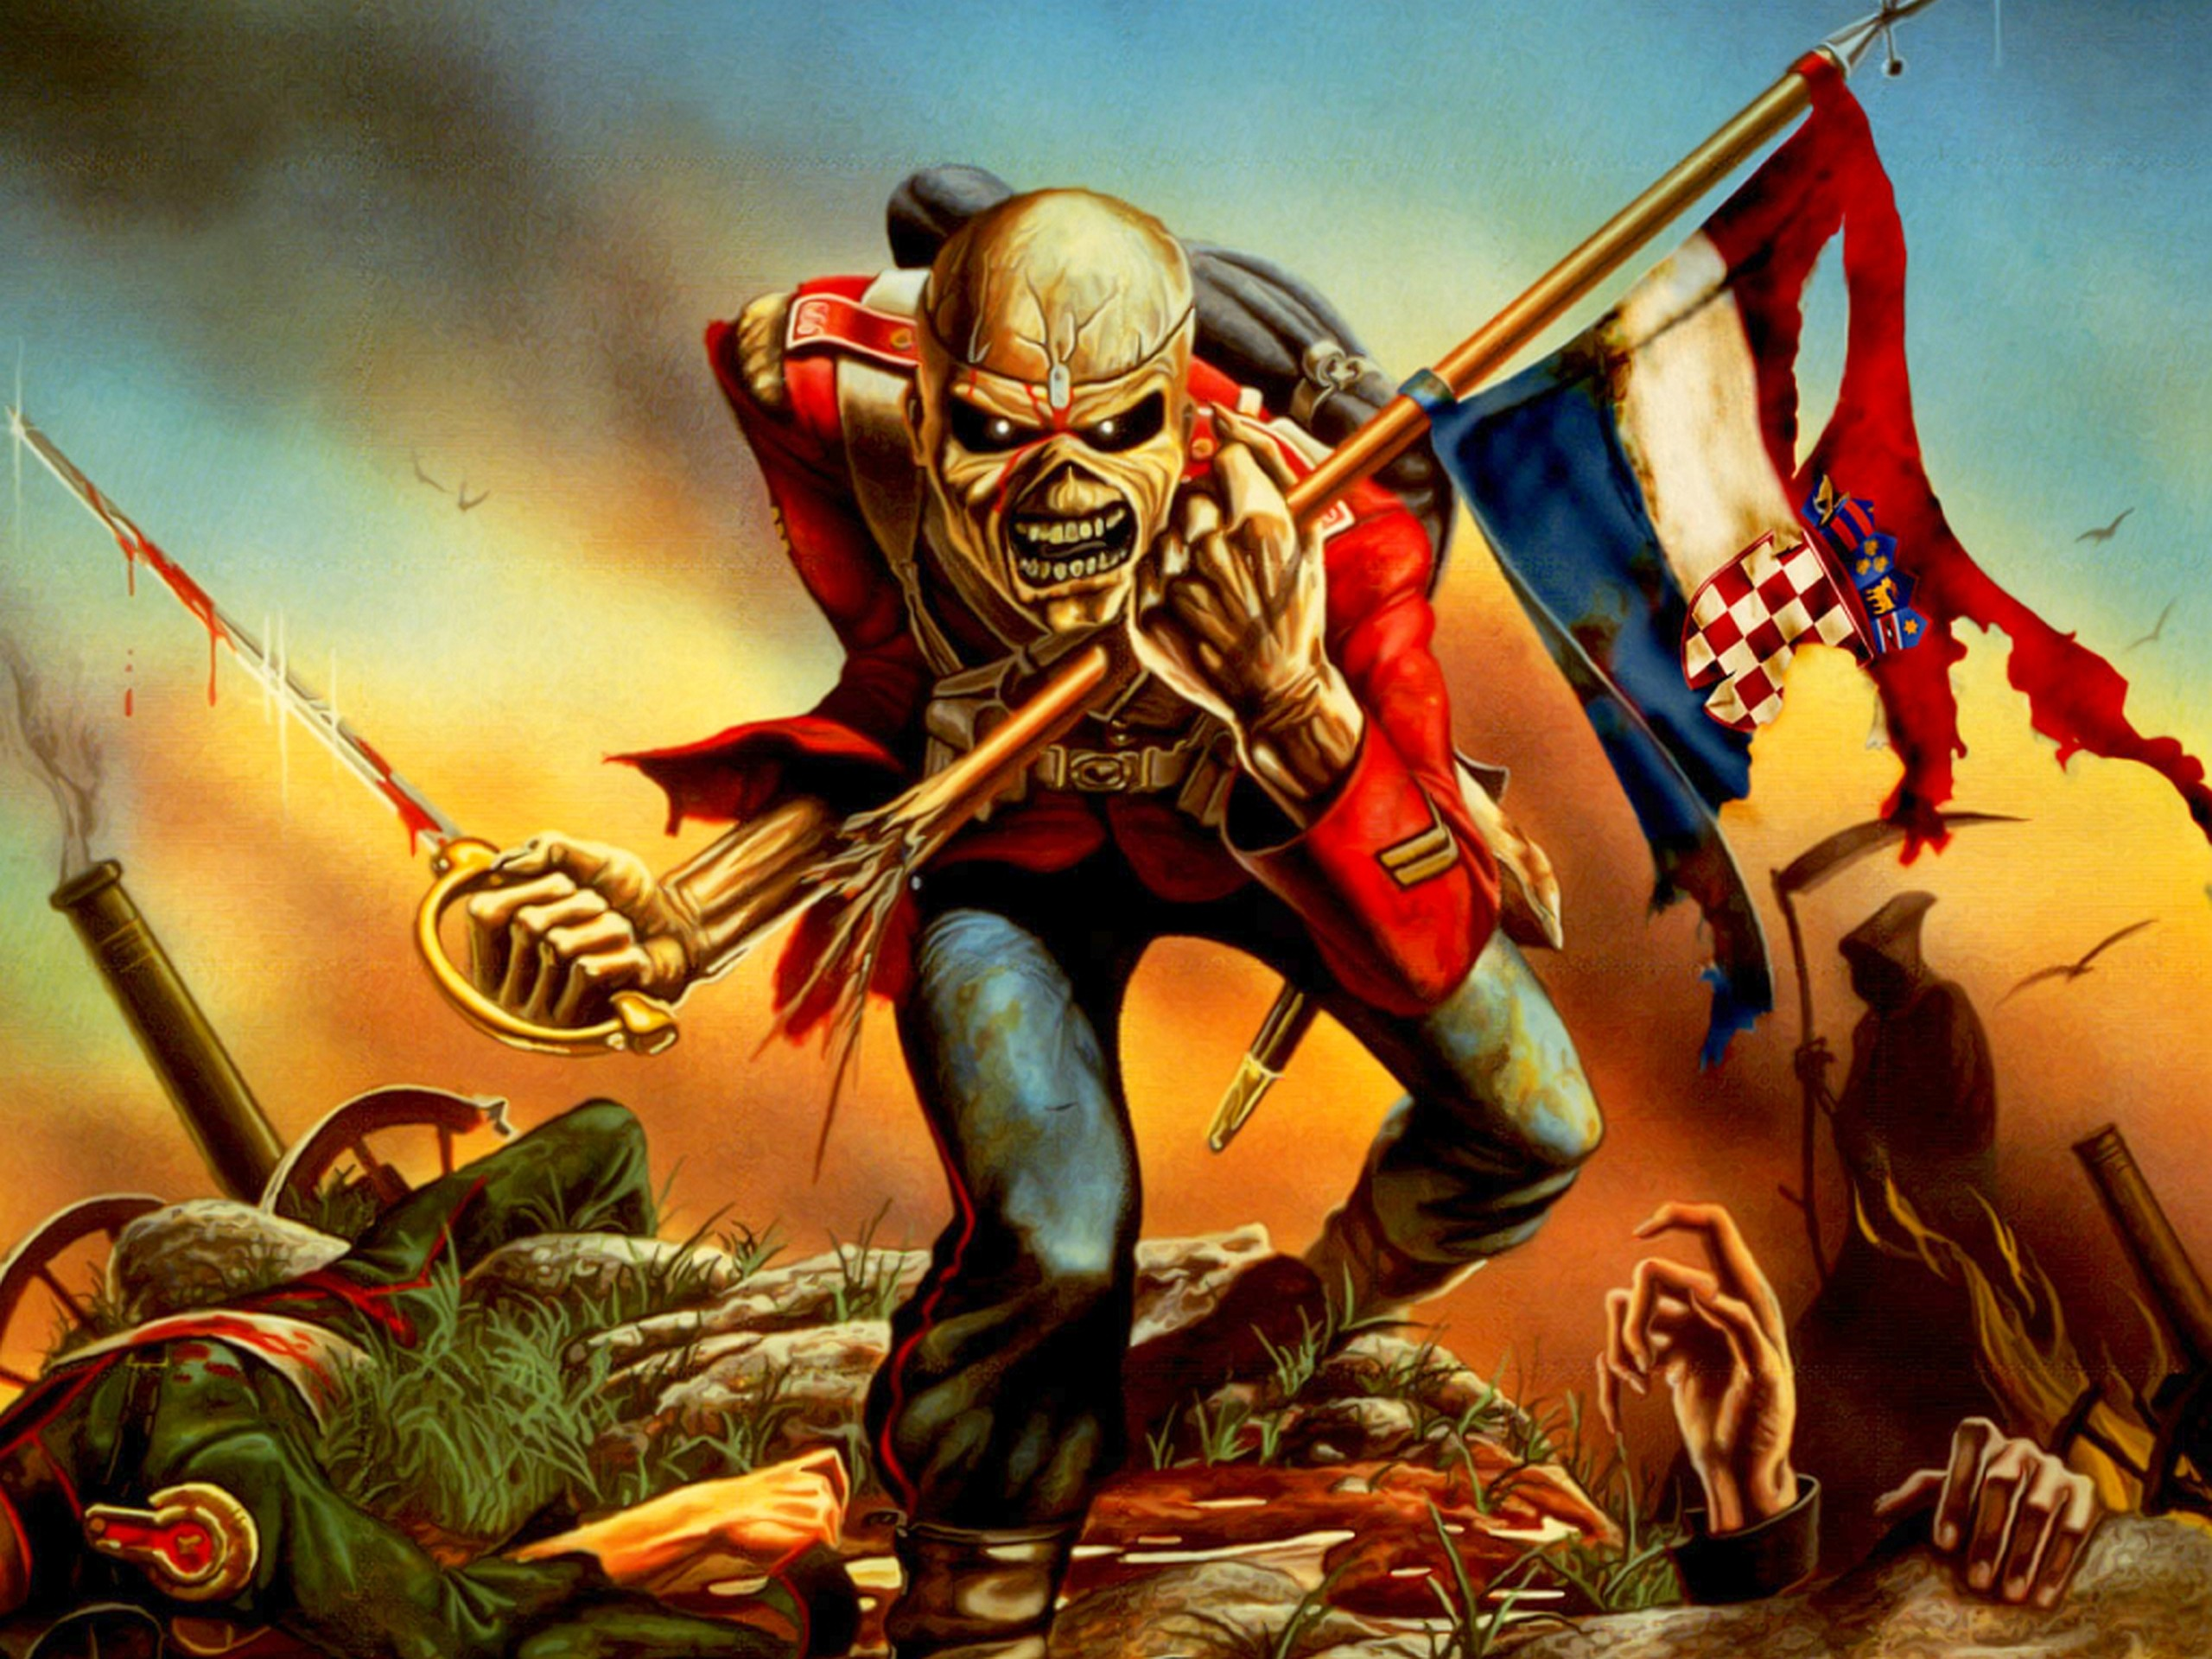 Pics Photos – Iron Maiden Wallpaper Desktop